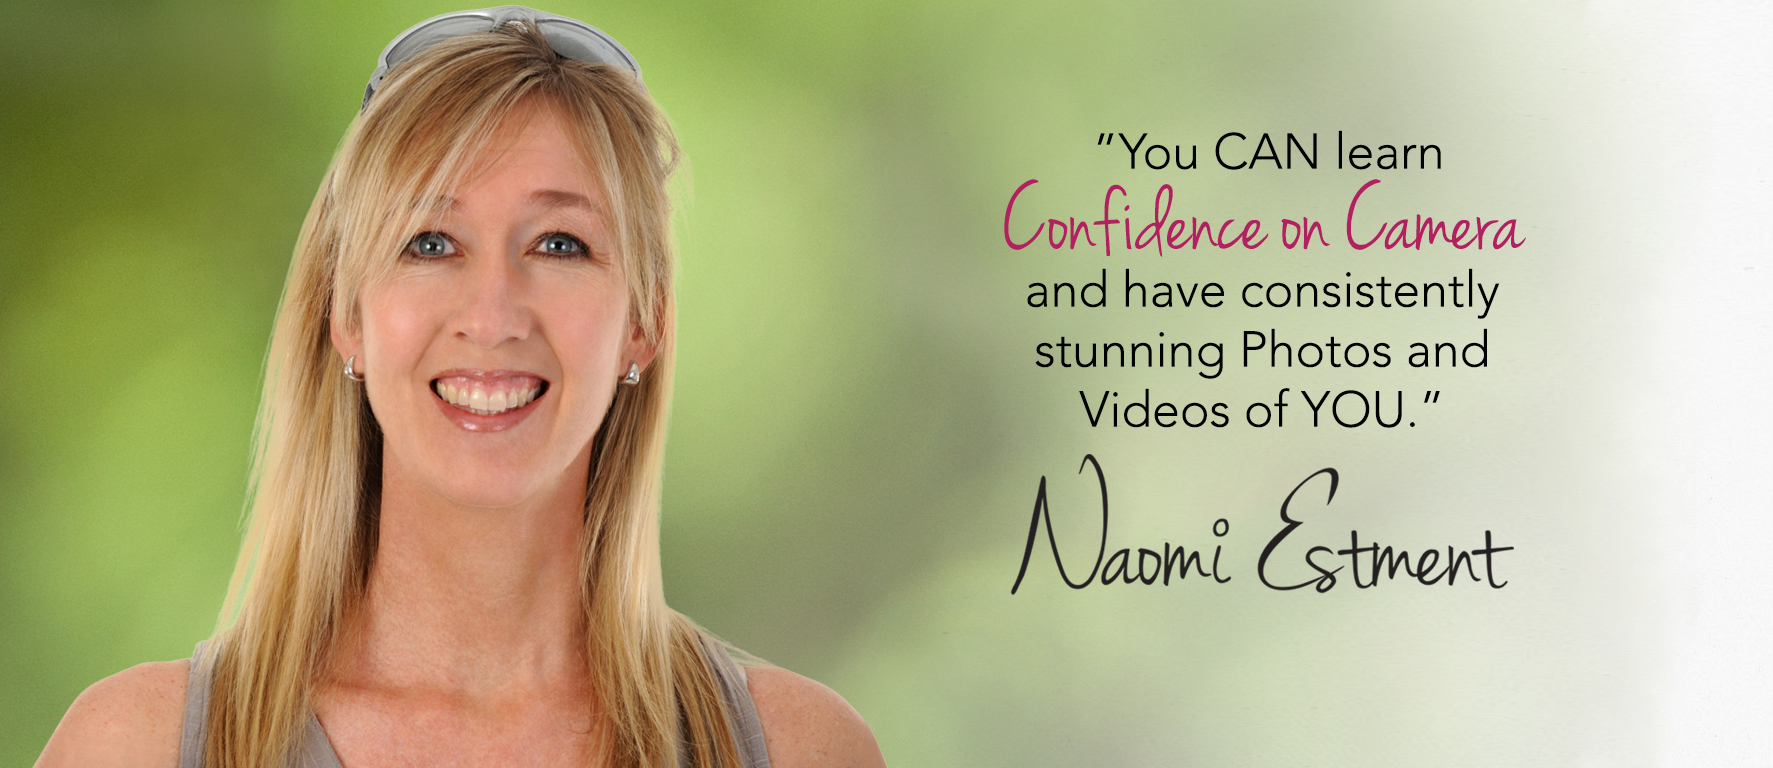 Naomi Estment - Confidence on Camera Coach